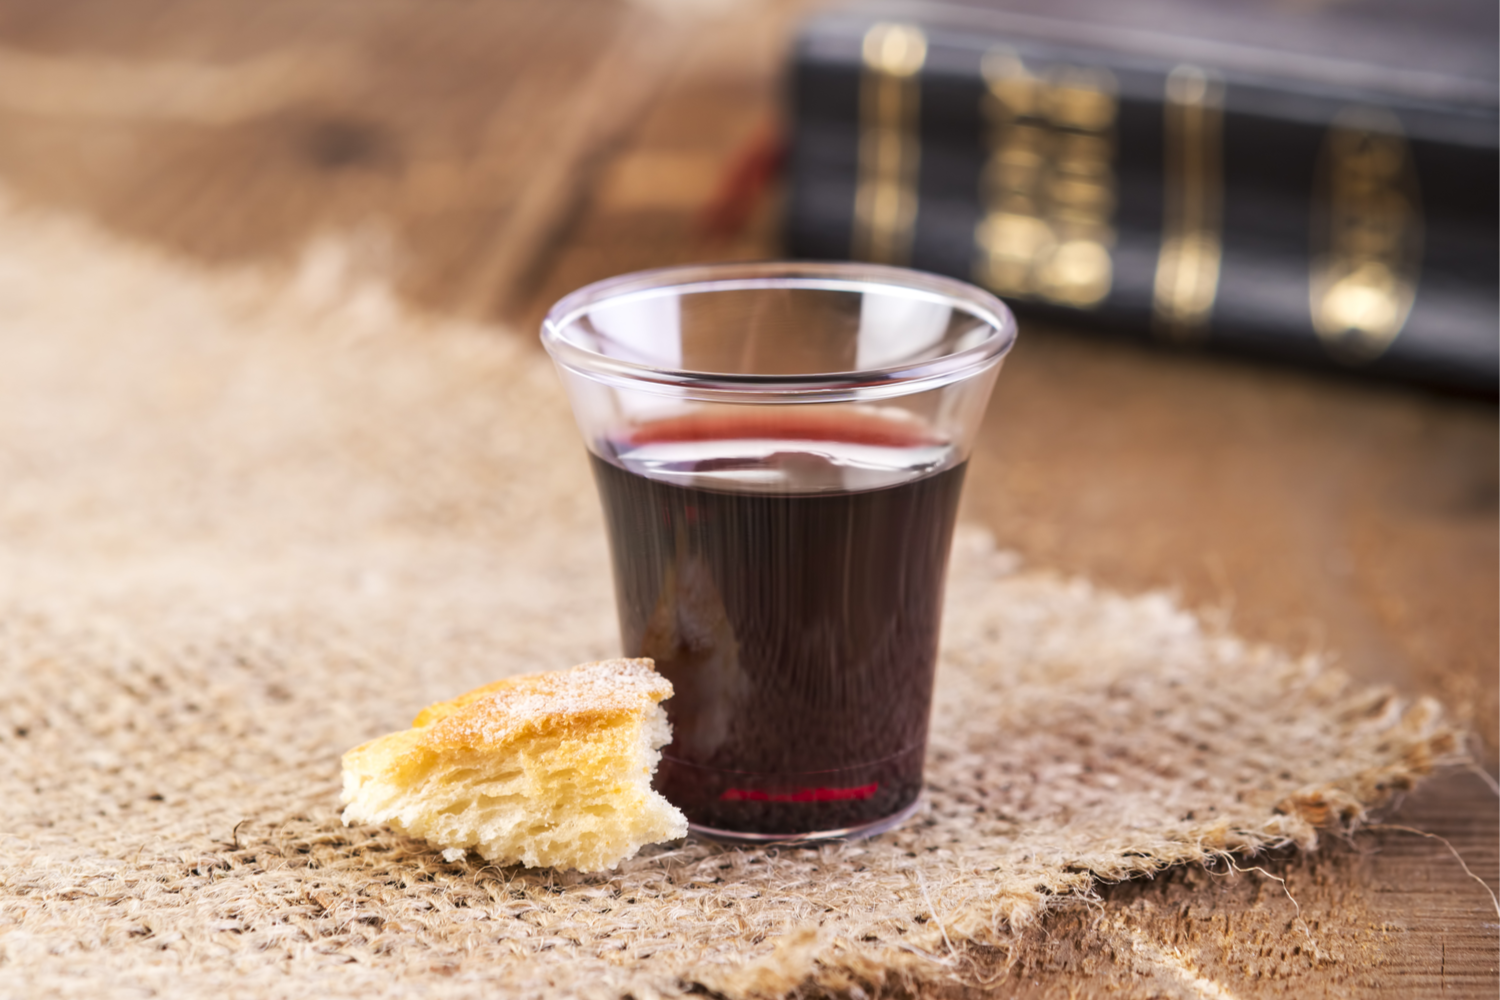 how_to_take_communion_over_finances_600303806.png